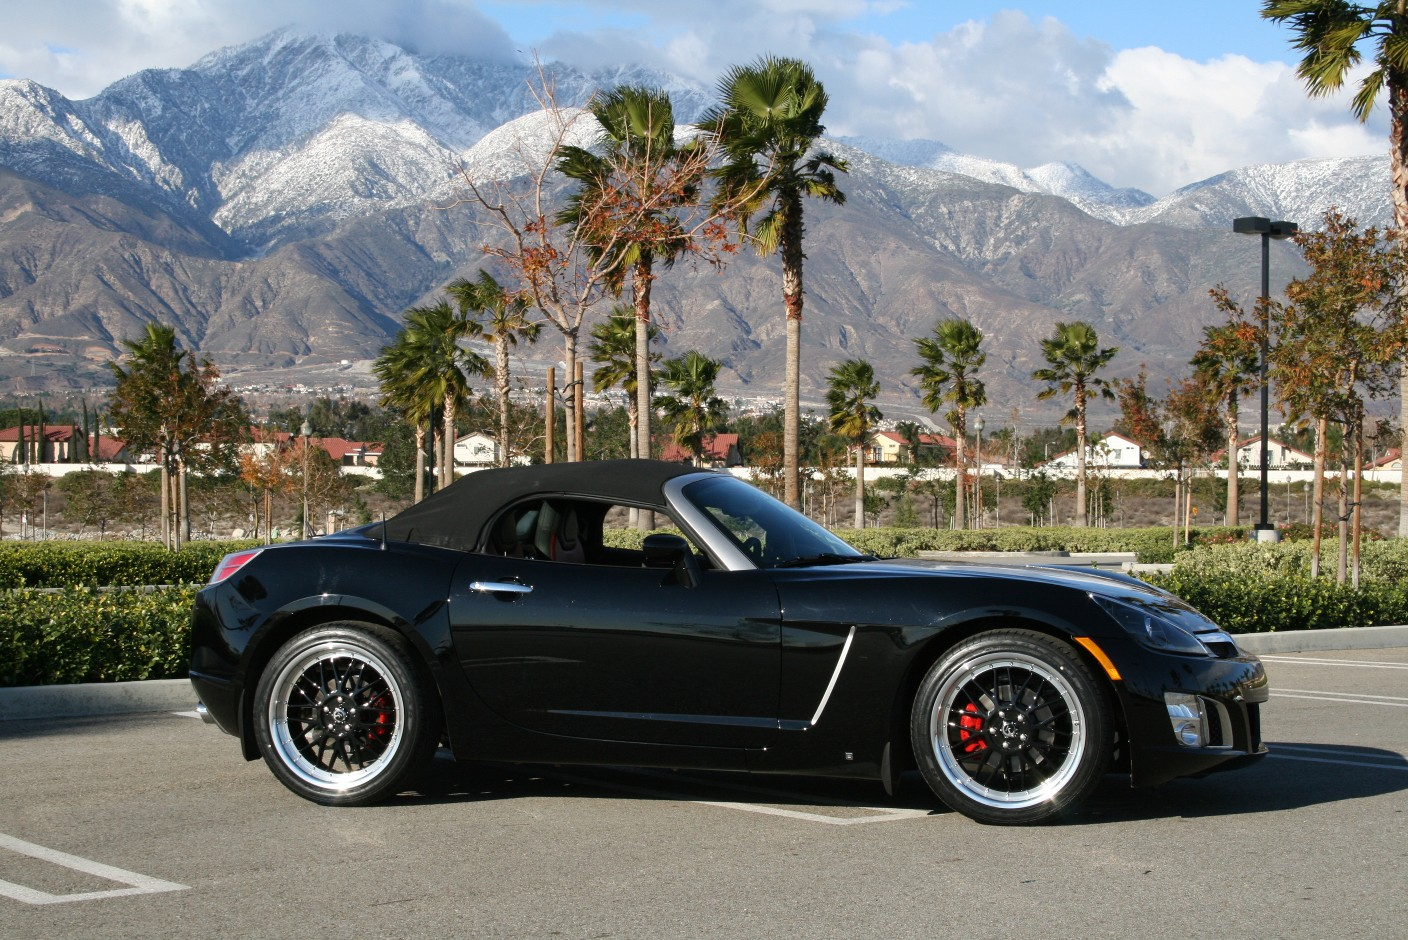 Saturn Sky wheels #3